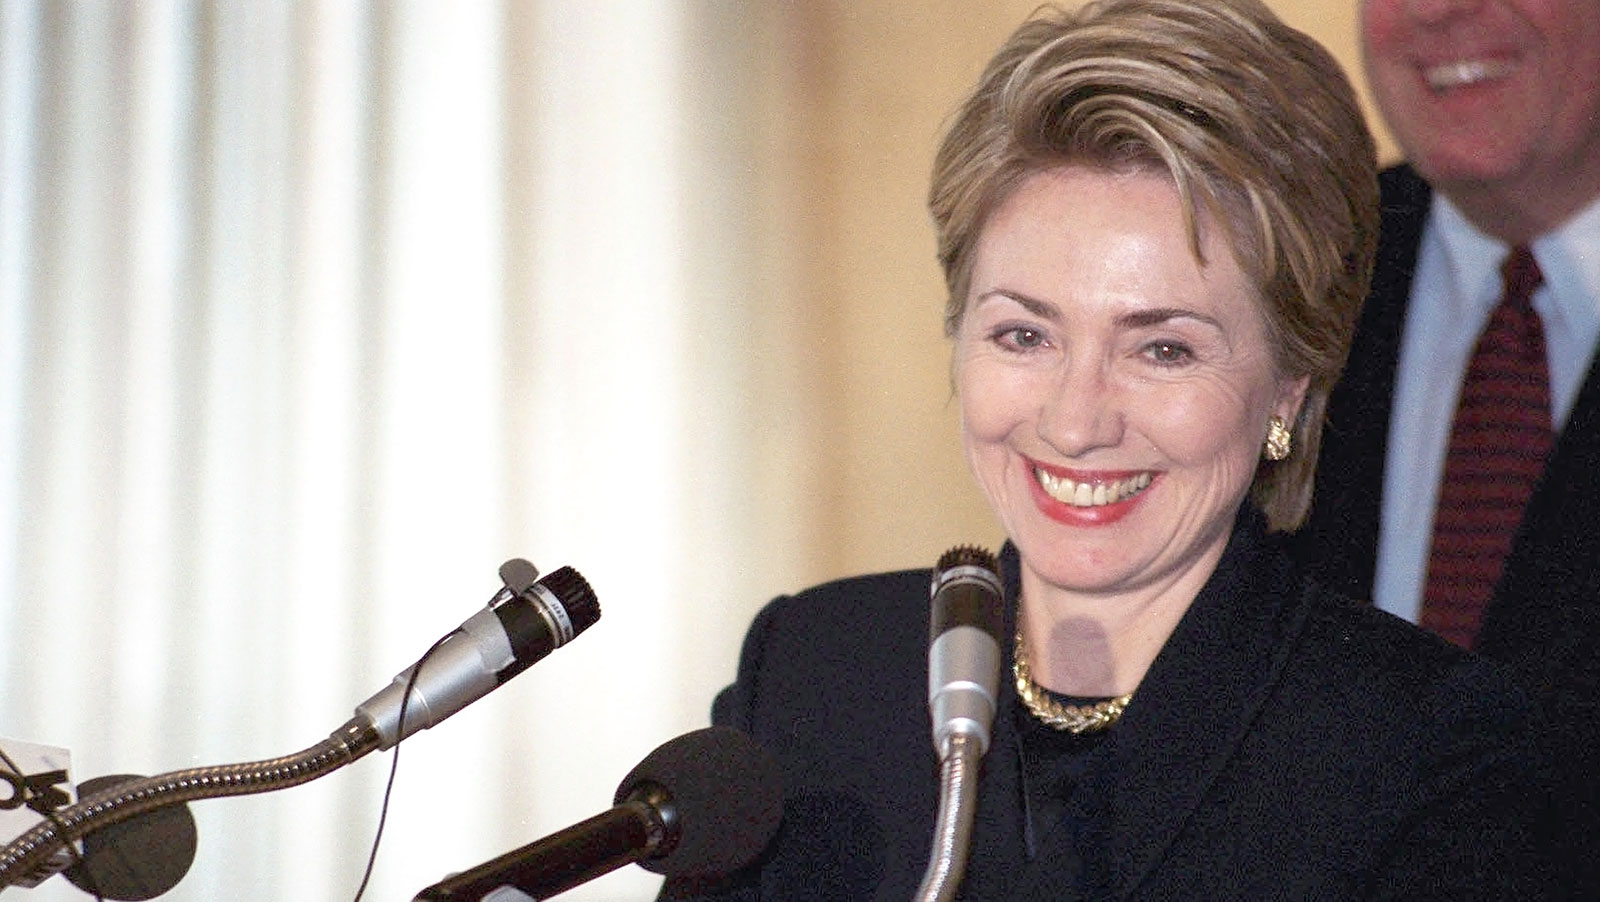 hillary-clinton-predicted-to-win-2020-presidential-race-despite-not-running